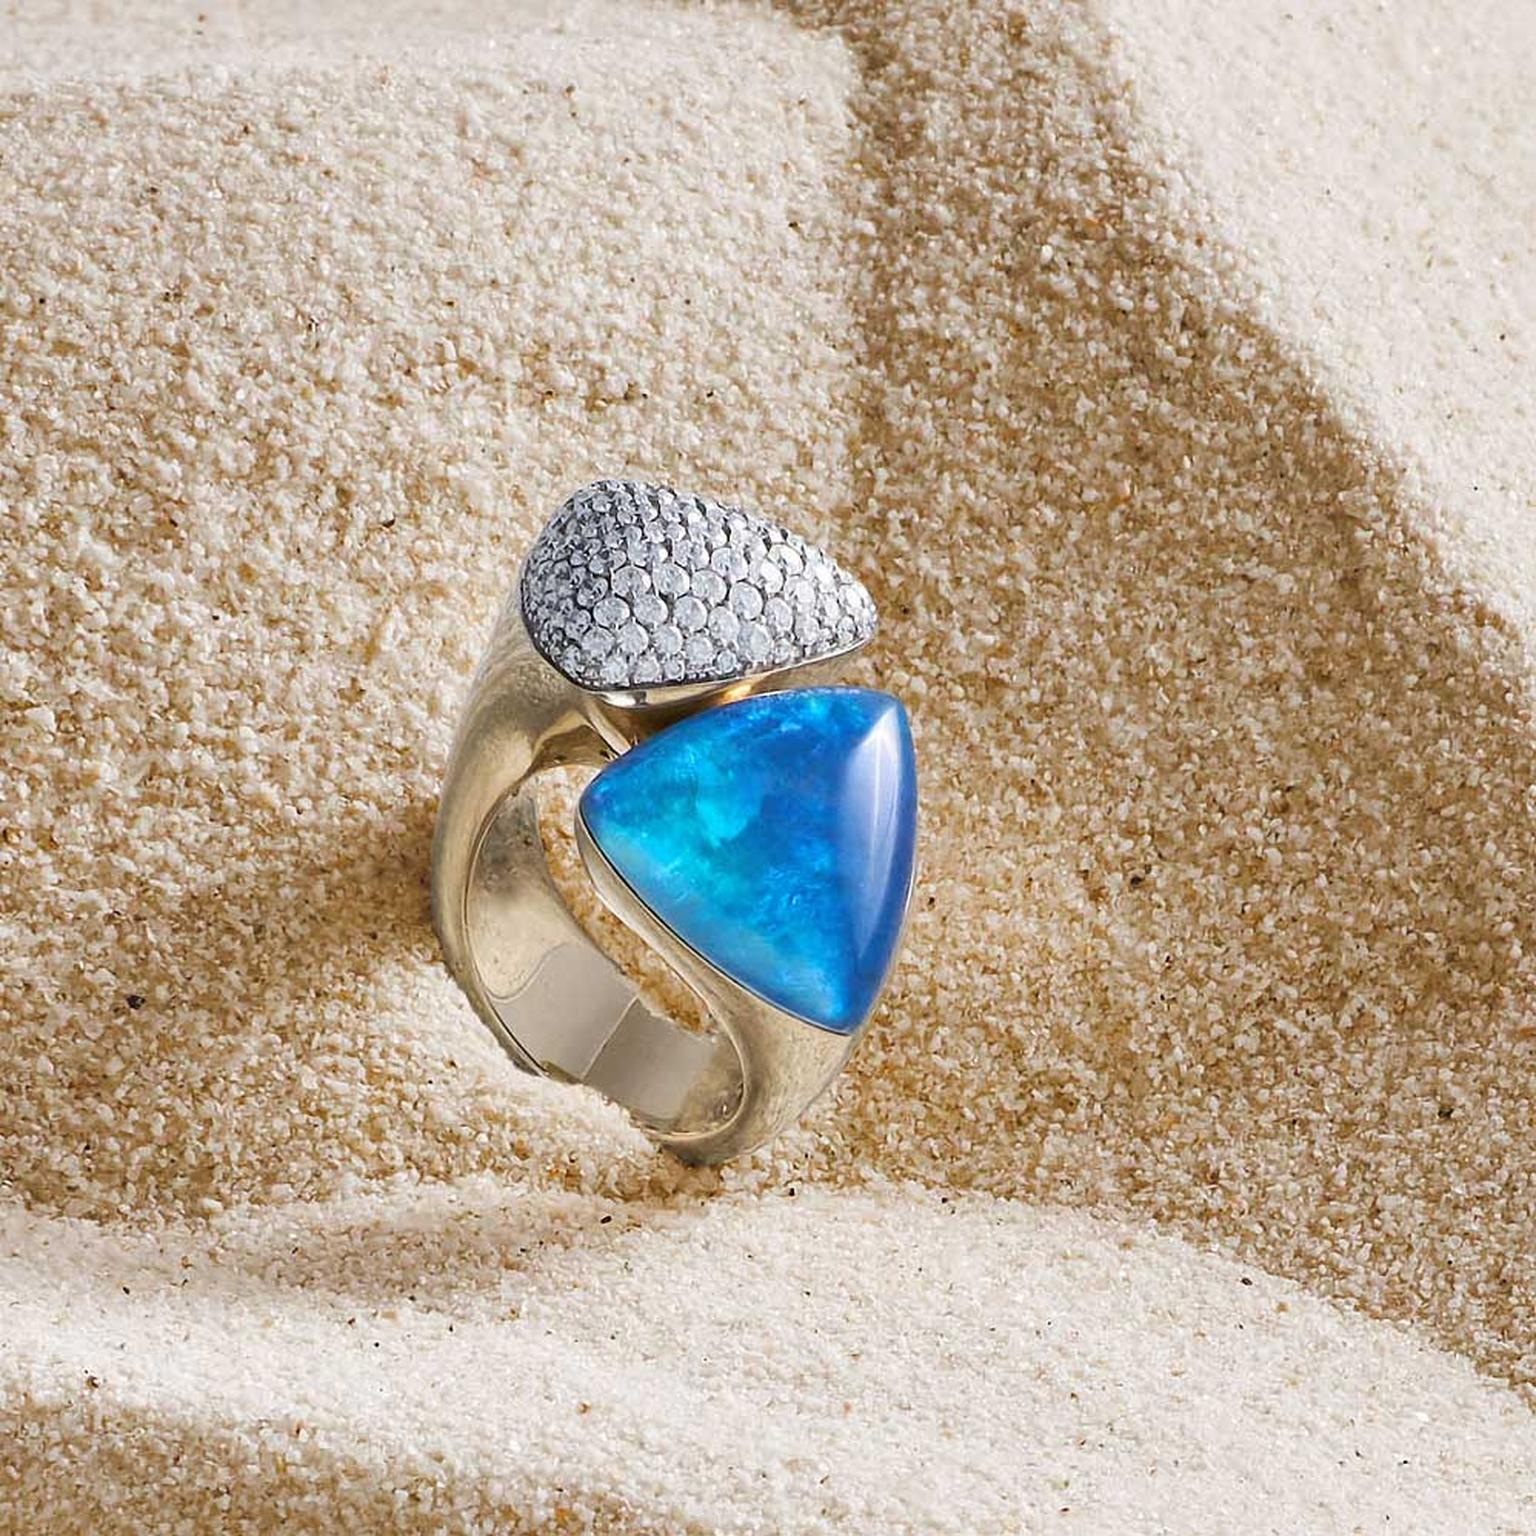 Vhernier Freccia ring with imperial opal, black jade and carved rock crystal. Photo credit: Erdna